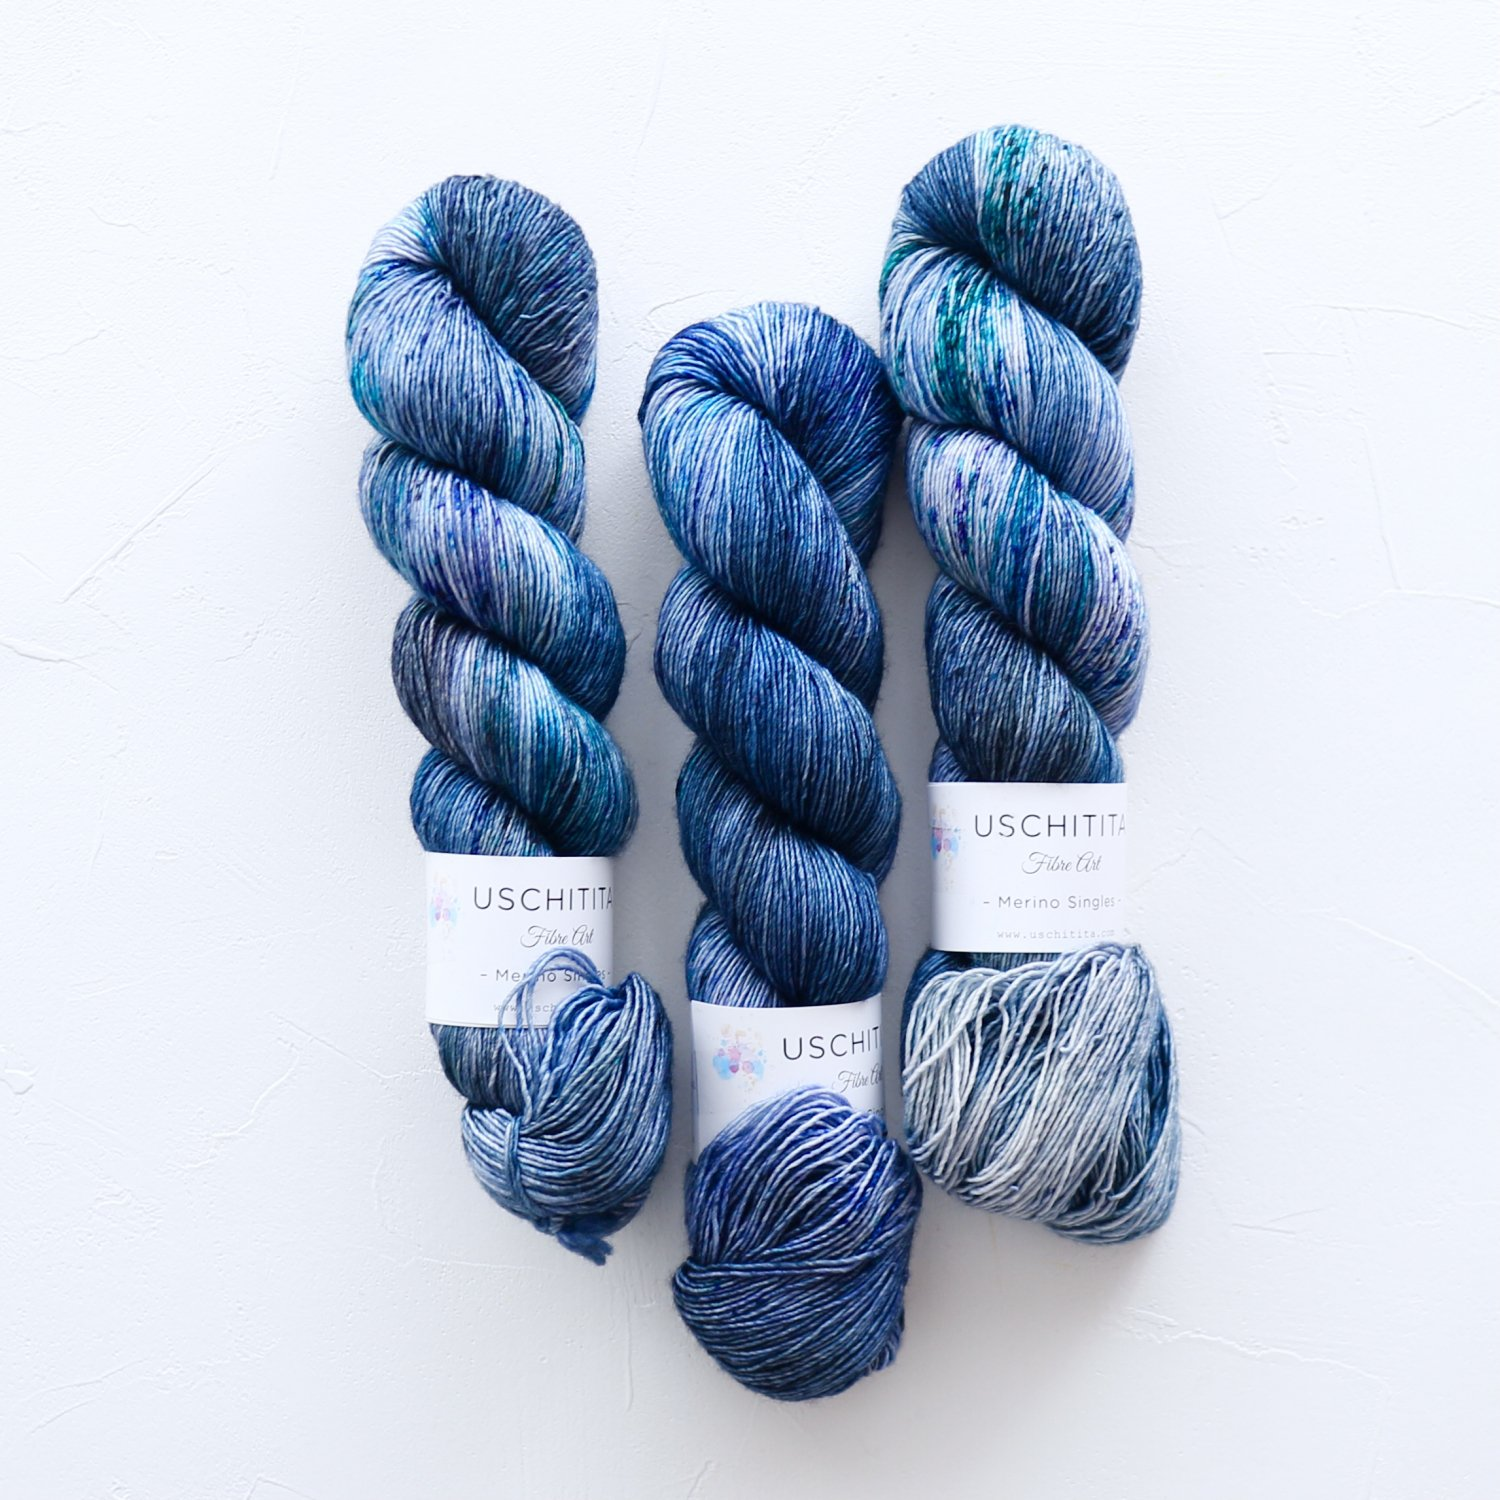 【uschitita】<br>Merino Singles<br>Cloud Atlas